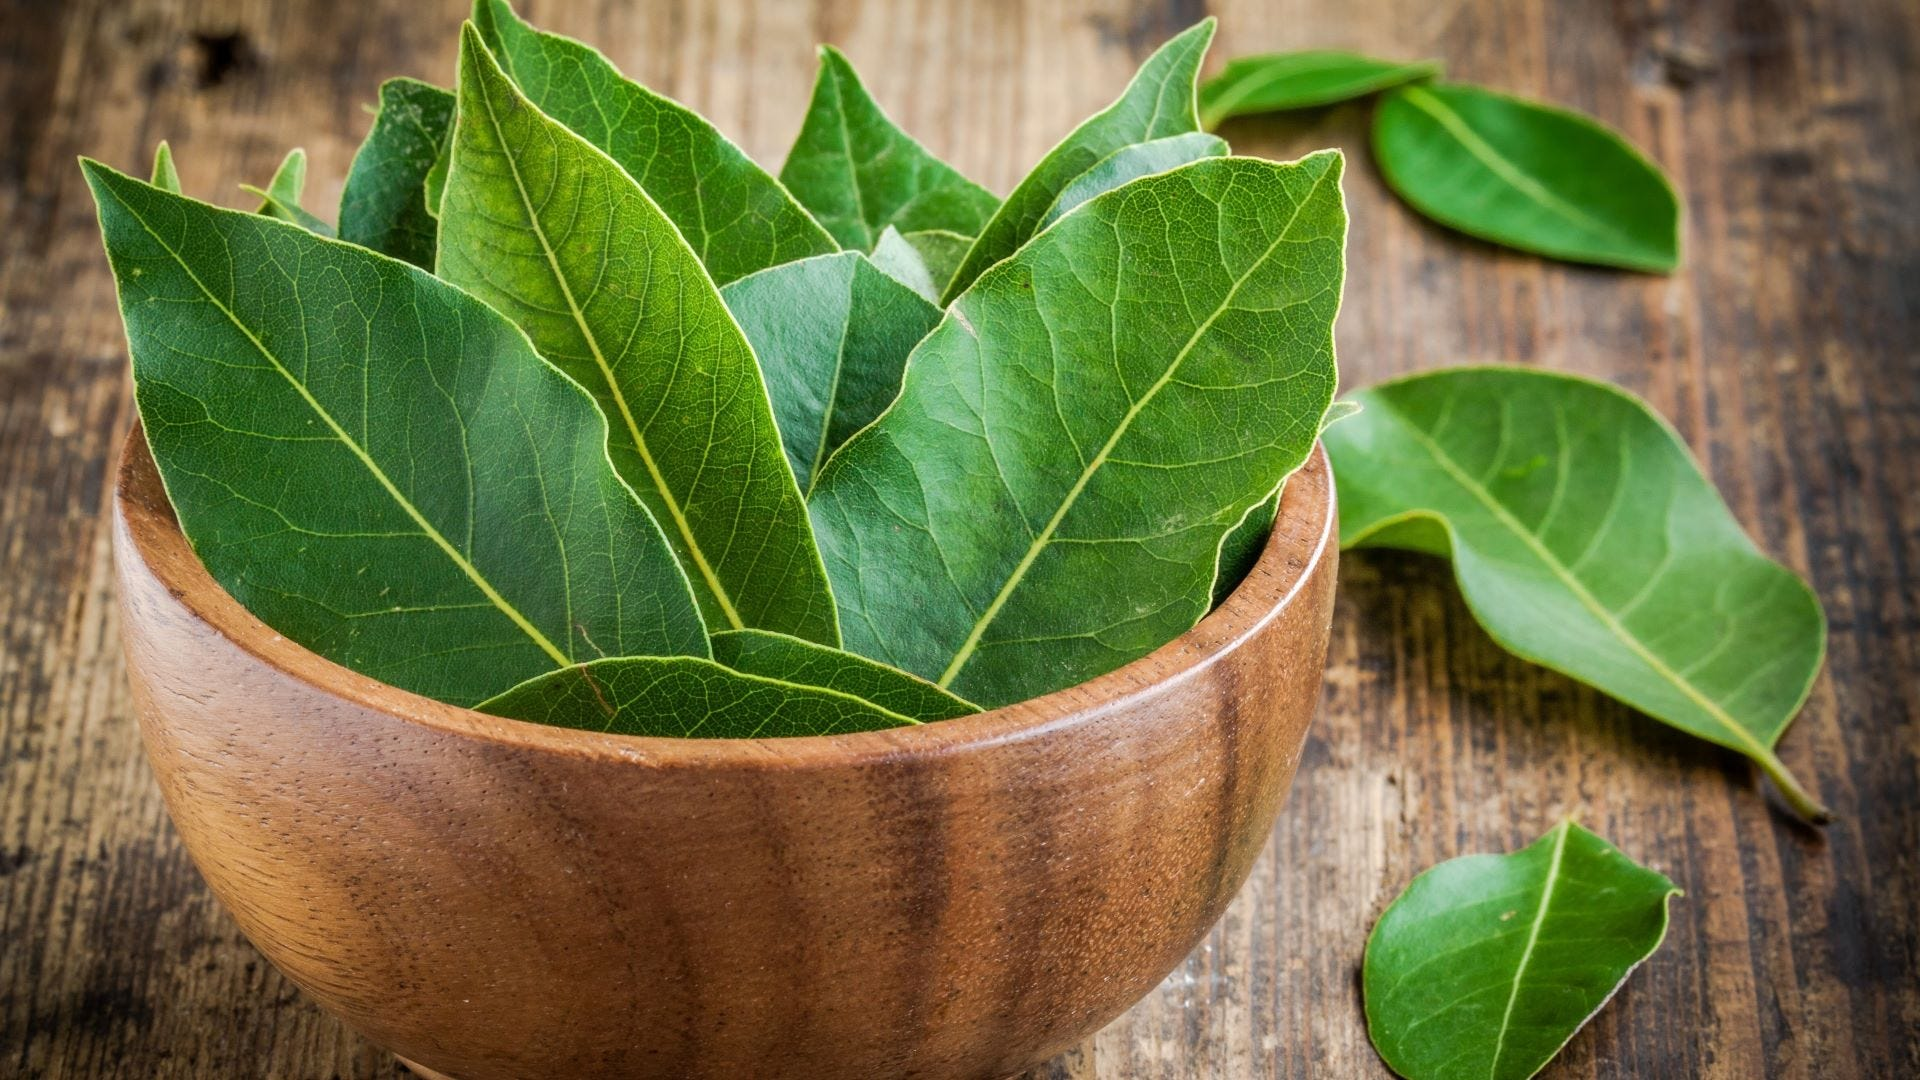 A wooden bowl full of bay leaves.